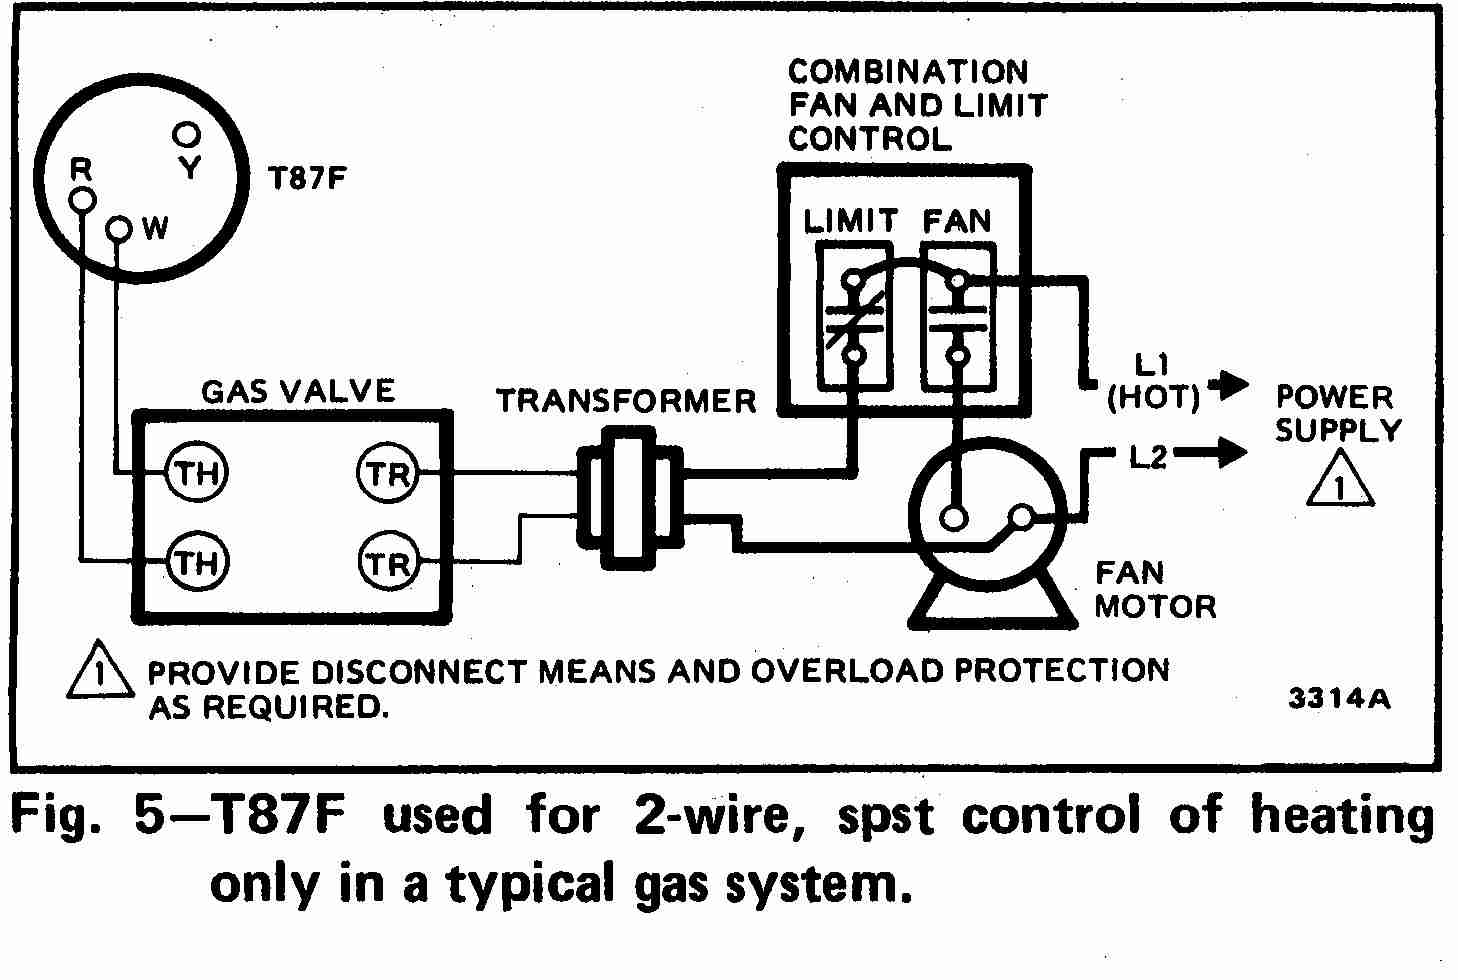 Heating Hvac Wiring Diagrams Reinvent Your Diagram York Heat Pump Thermostat Het Room For Systems Rh Inspectapedia Com Basic Control